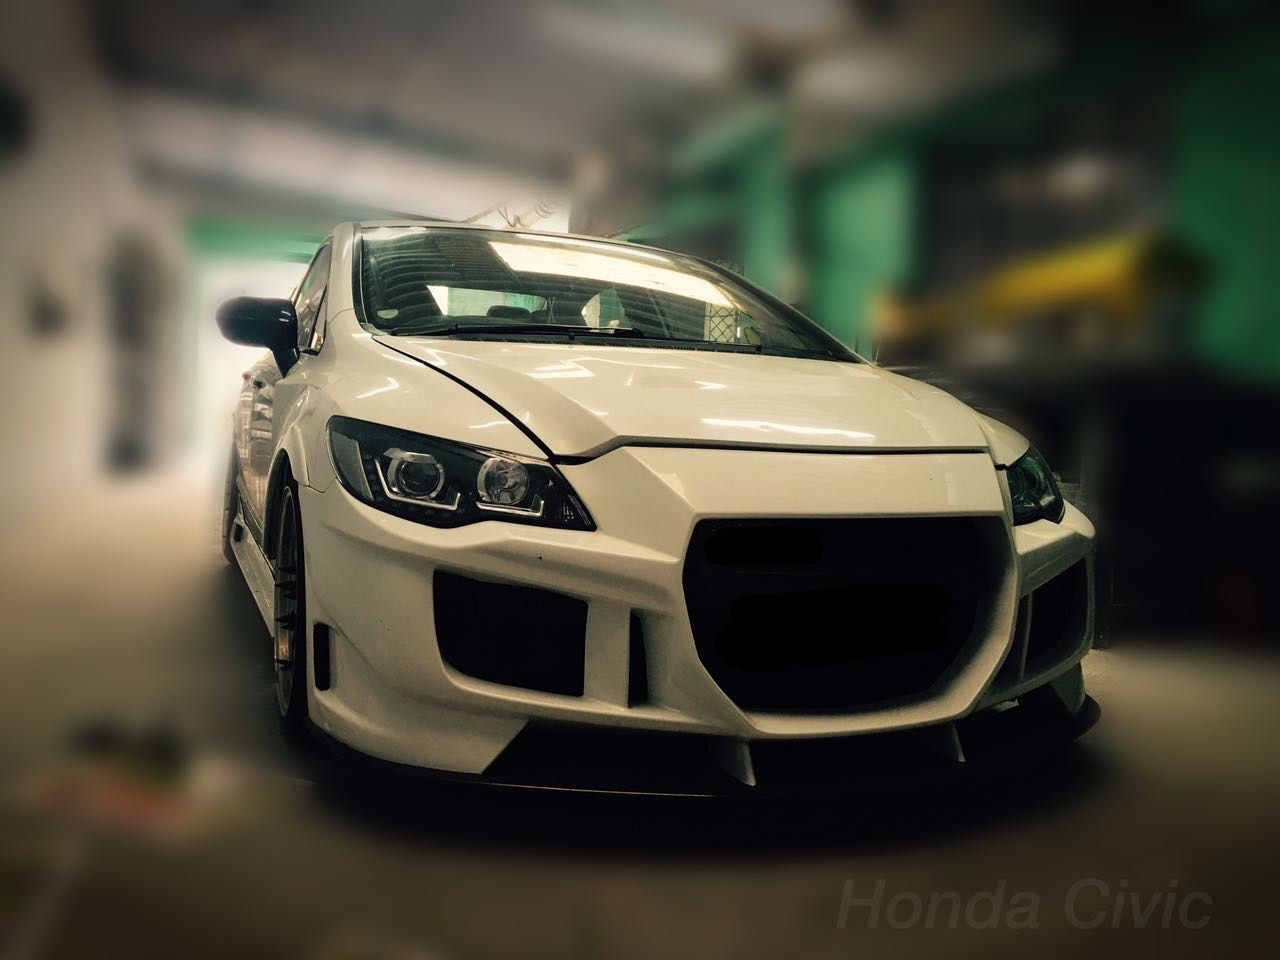 CRZ kit for Civic Front bumper modification , rear bumper modification, bonnet modification, customized civic modification